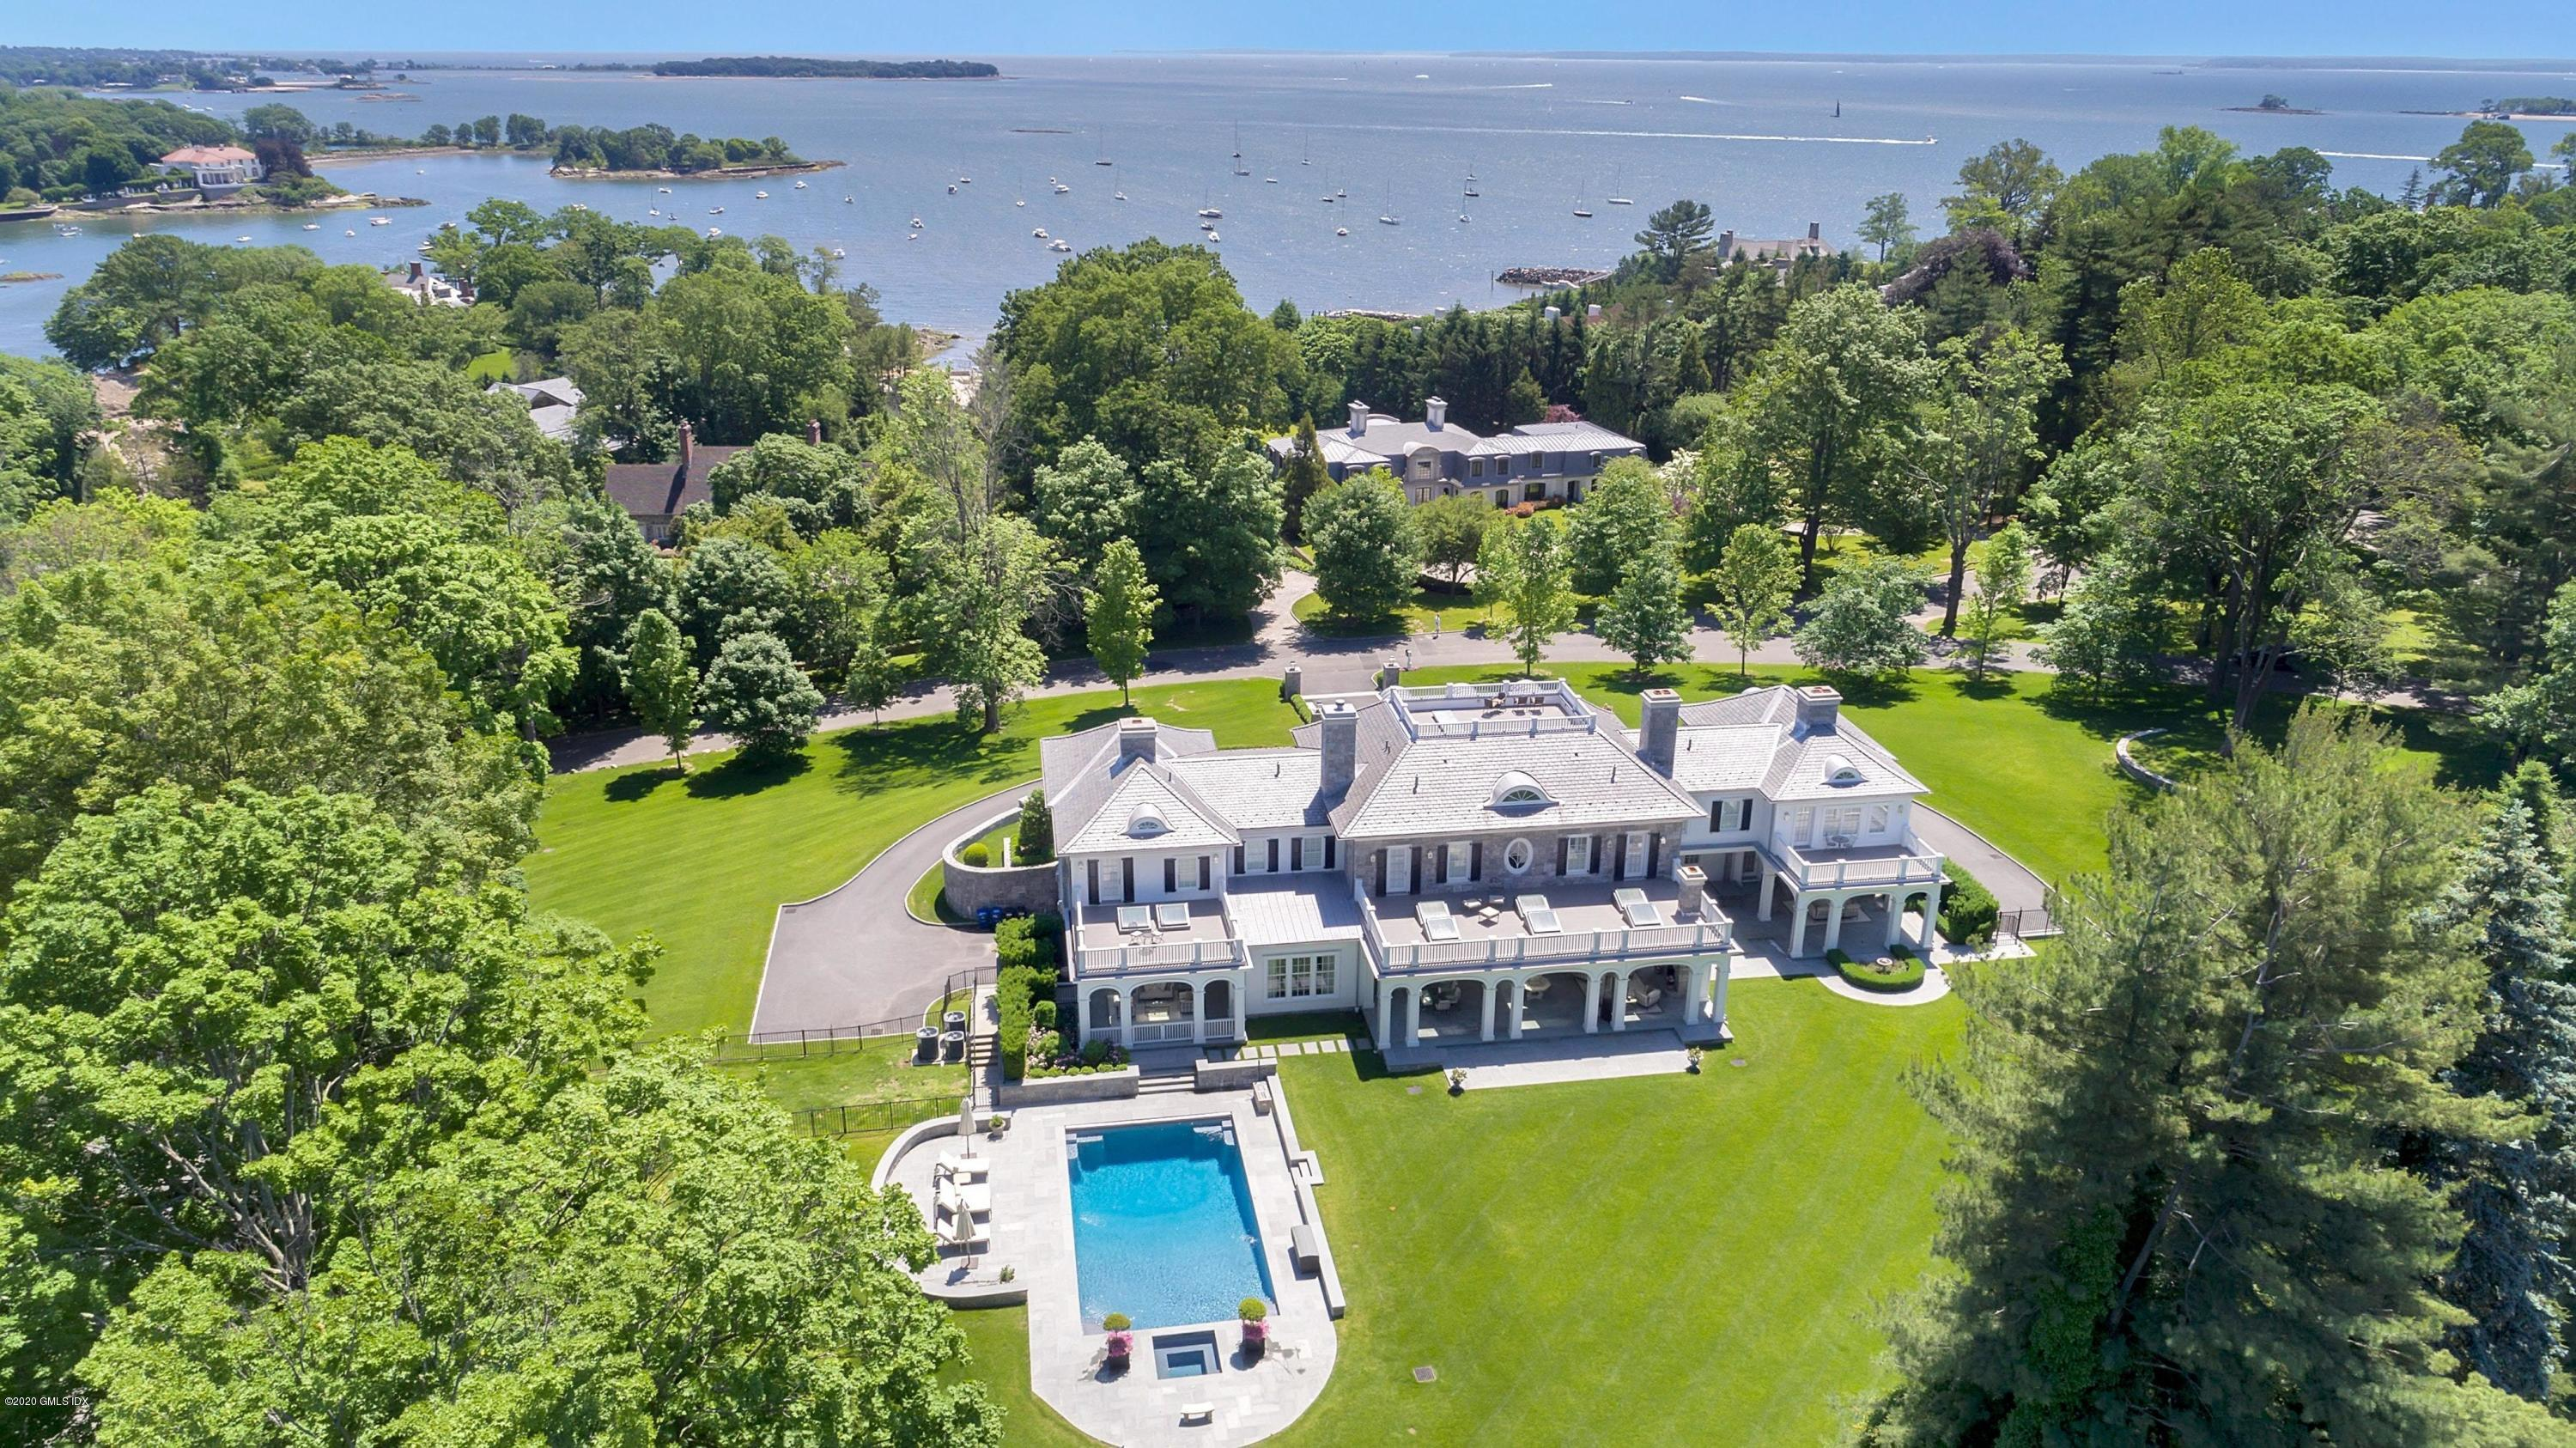 135 Field Point Circle,Greenwich,Connecticut 06830,6 Bedrooms Bedrooms,7 BathroomsBathrooms,Single family,Field Point,108853